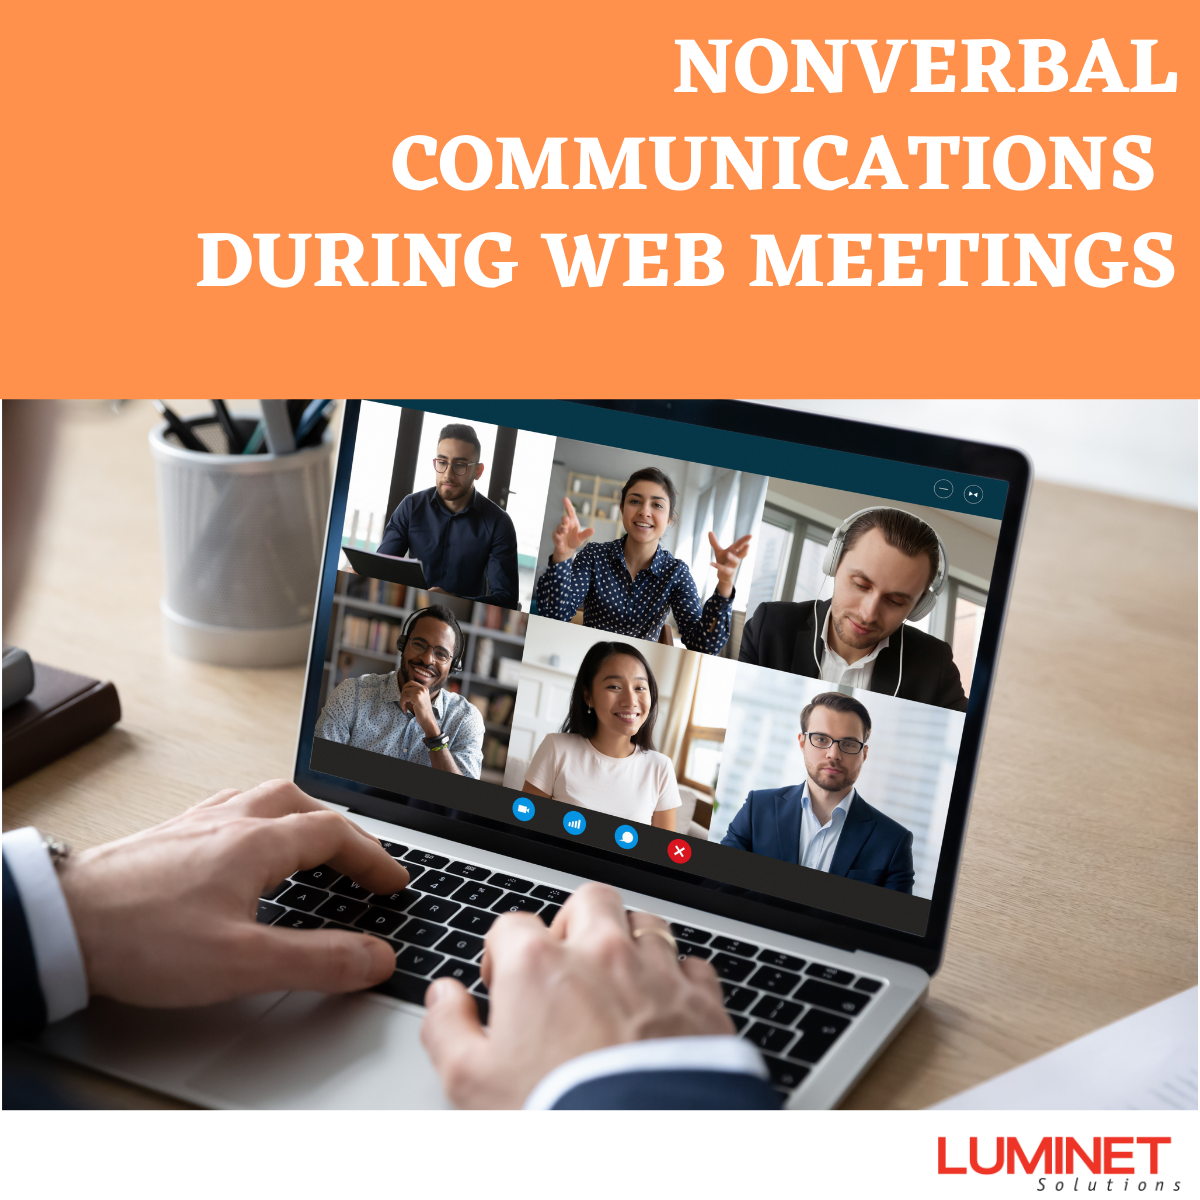 Business Man At A Laptop Computer Working With A Virtual Team In A Meeting - Non-verbal Communications During Web Meetings.